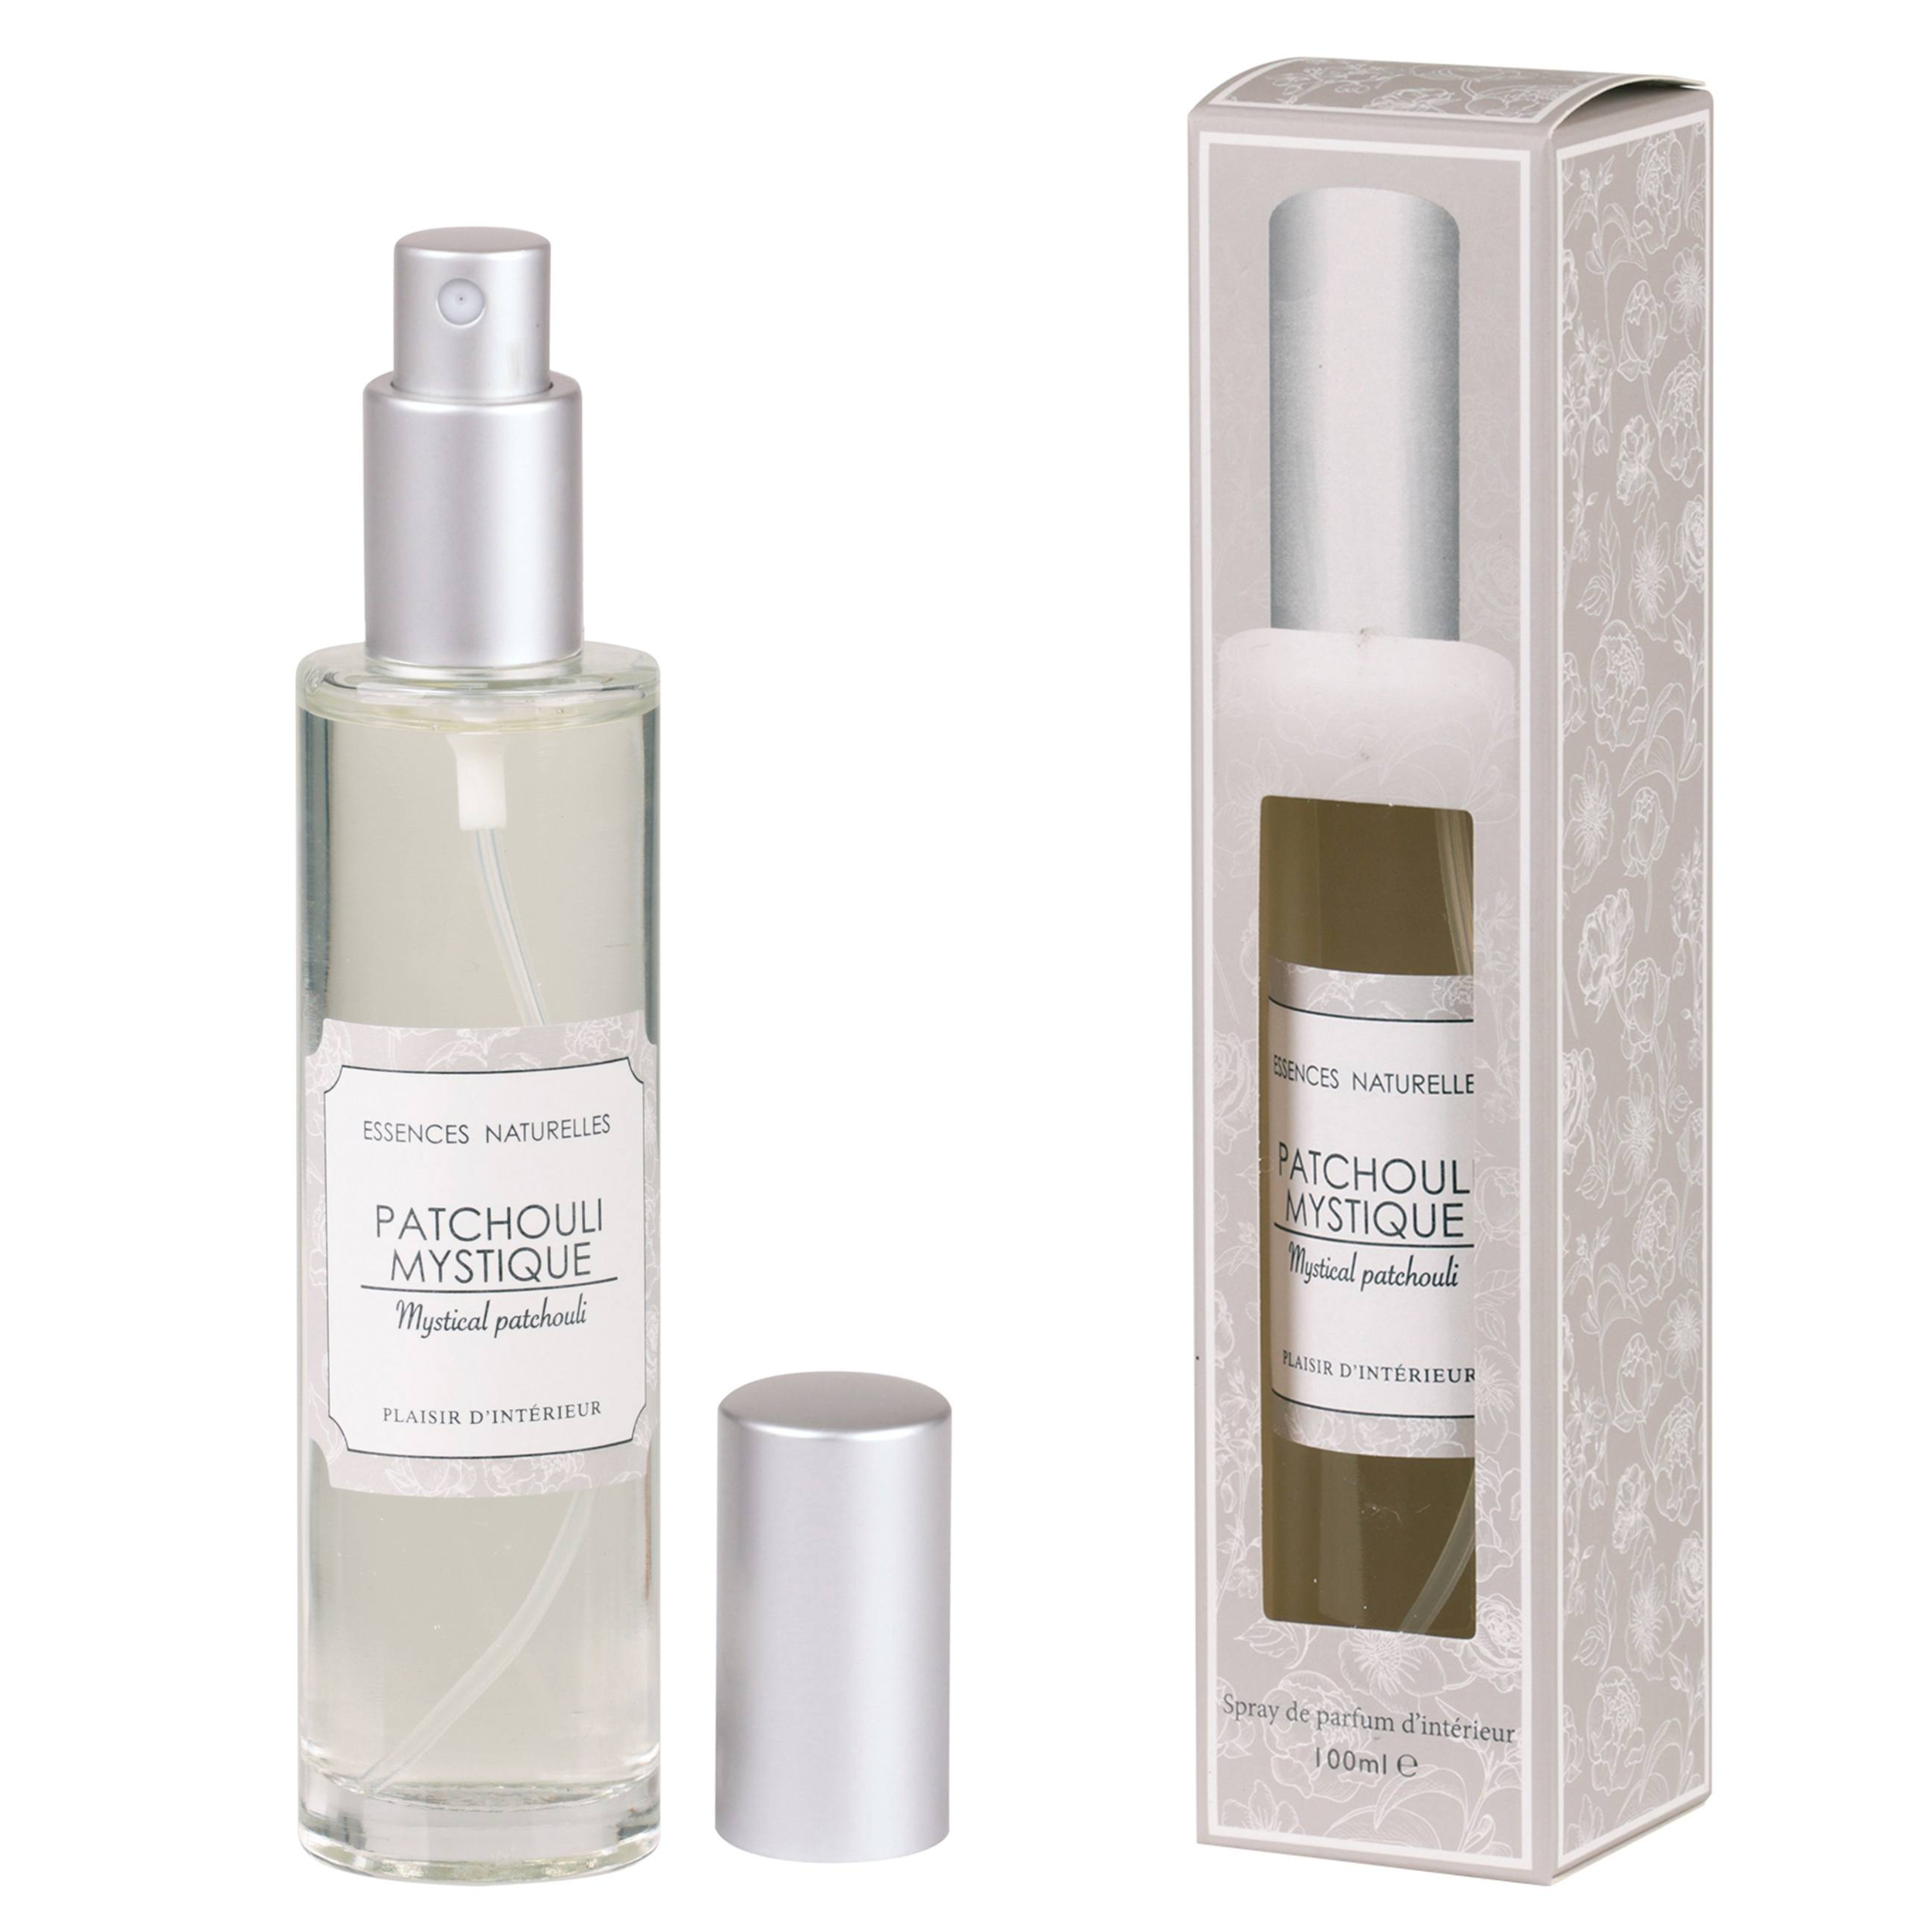 DIFFUSEUR_DE_PARFUM_EN_SPRAY_100ML_PATCHOULI_MYSTIQUE_30619